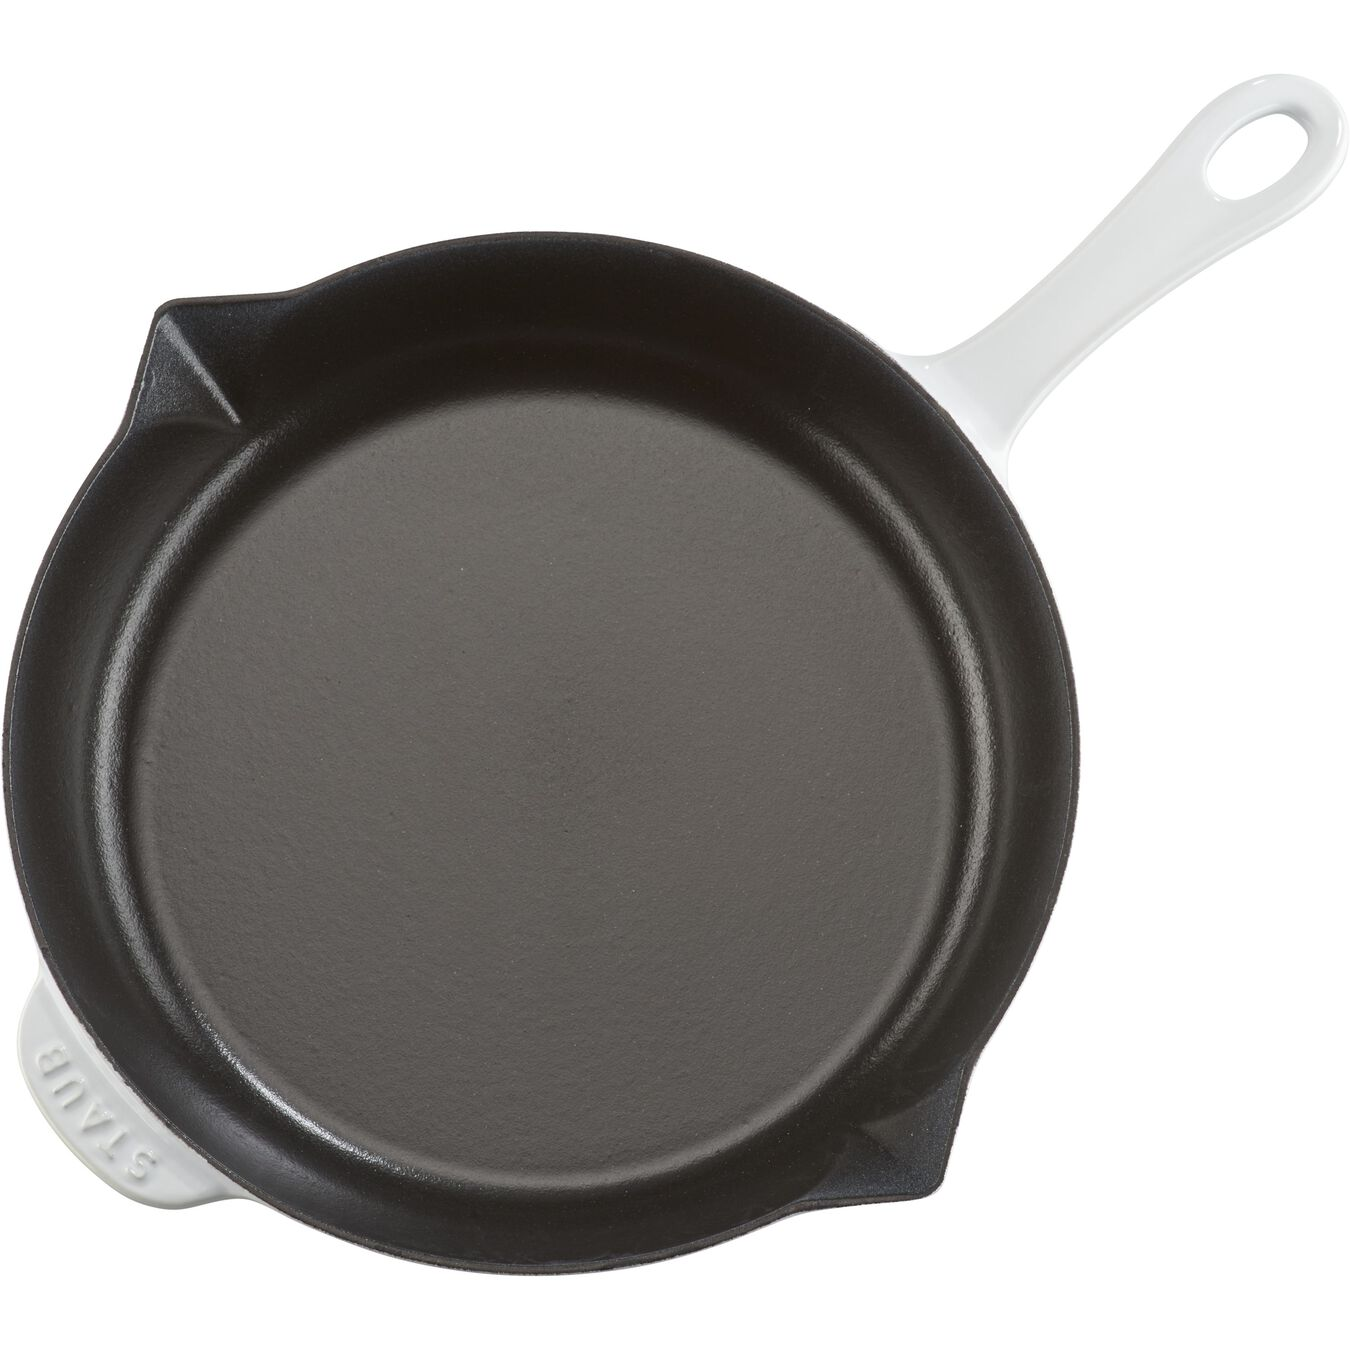 10-inch, Frying pan, white,,large 7